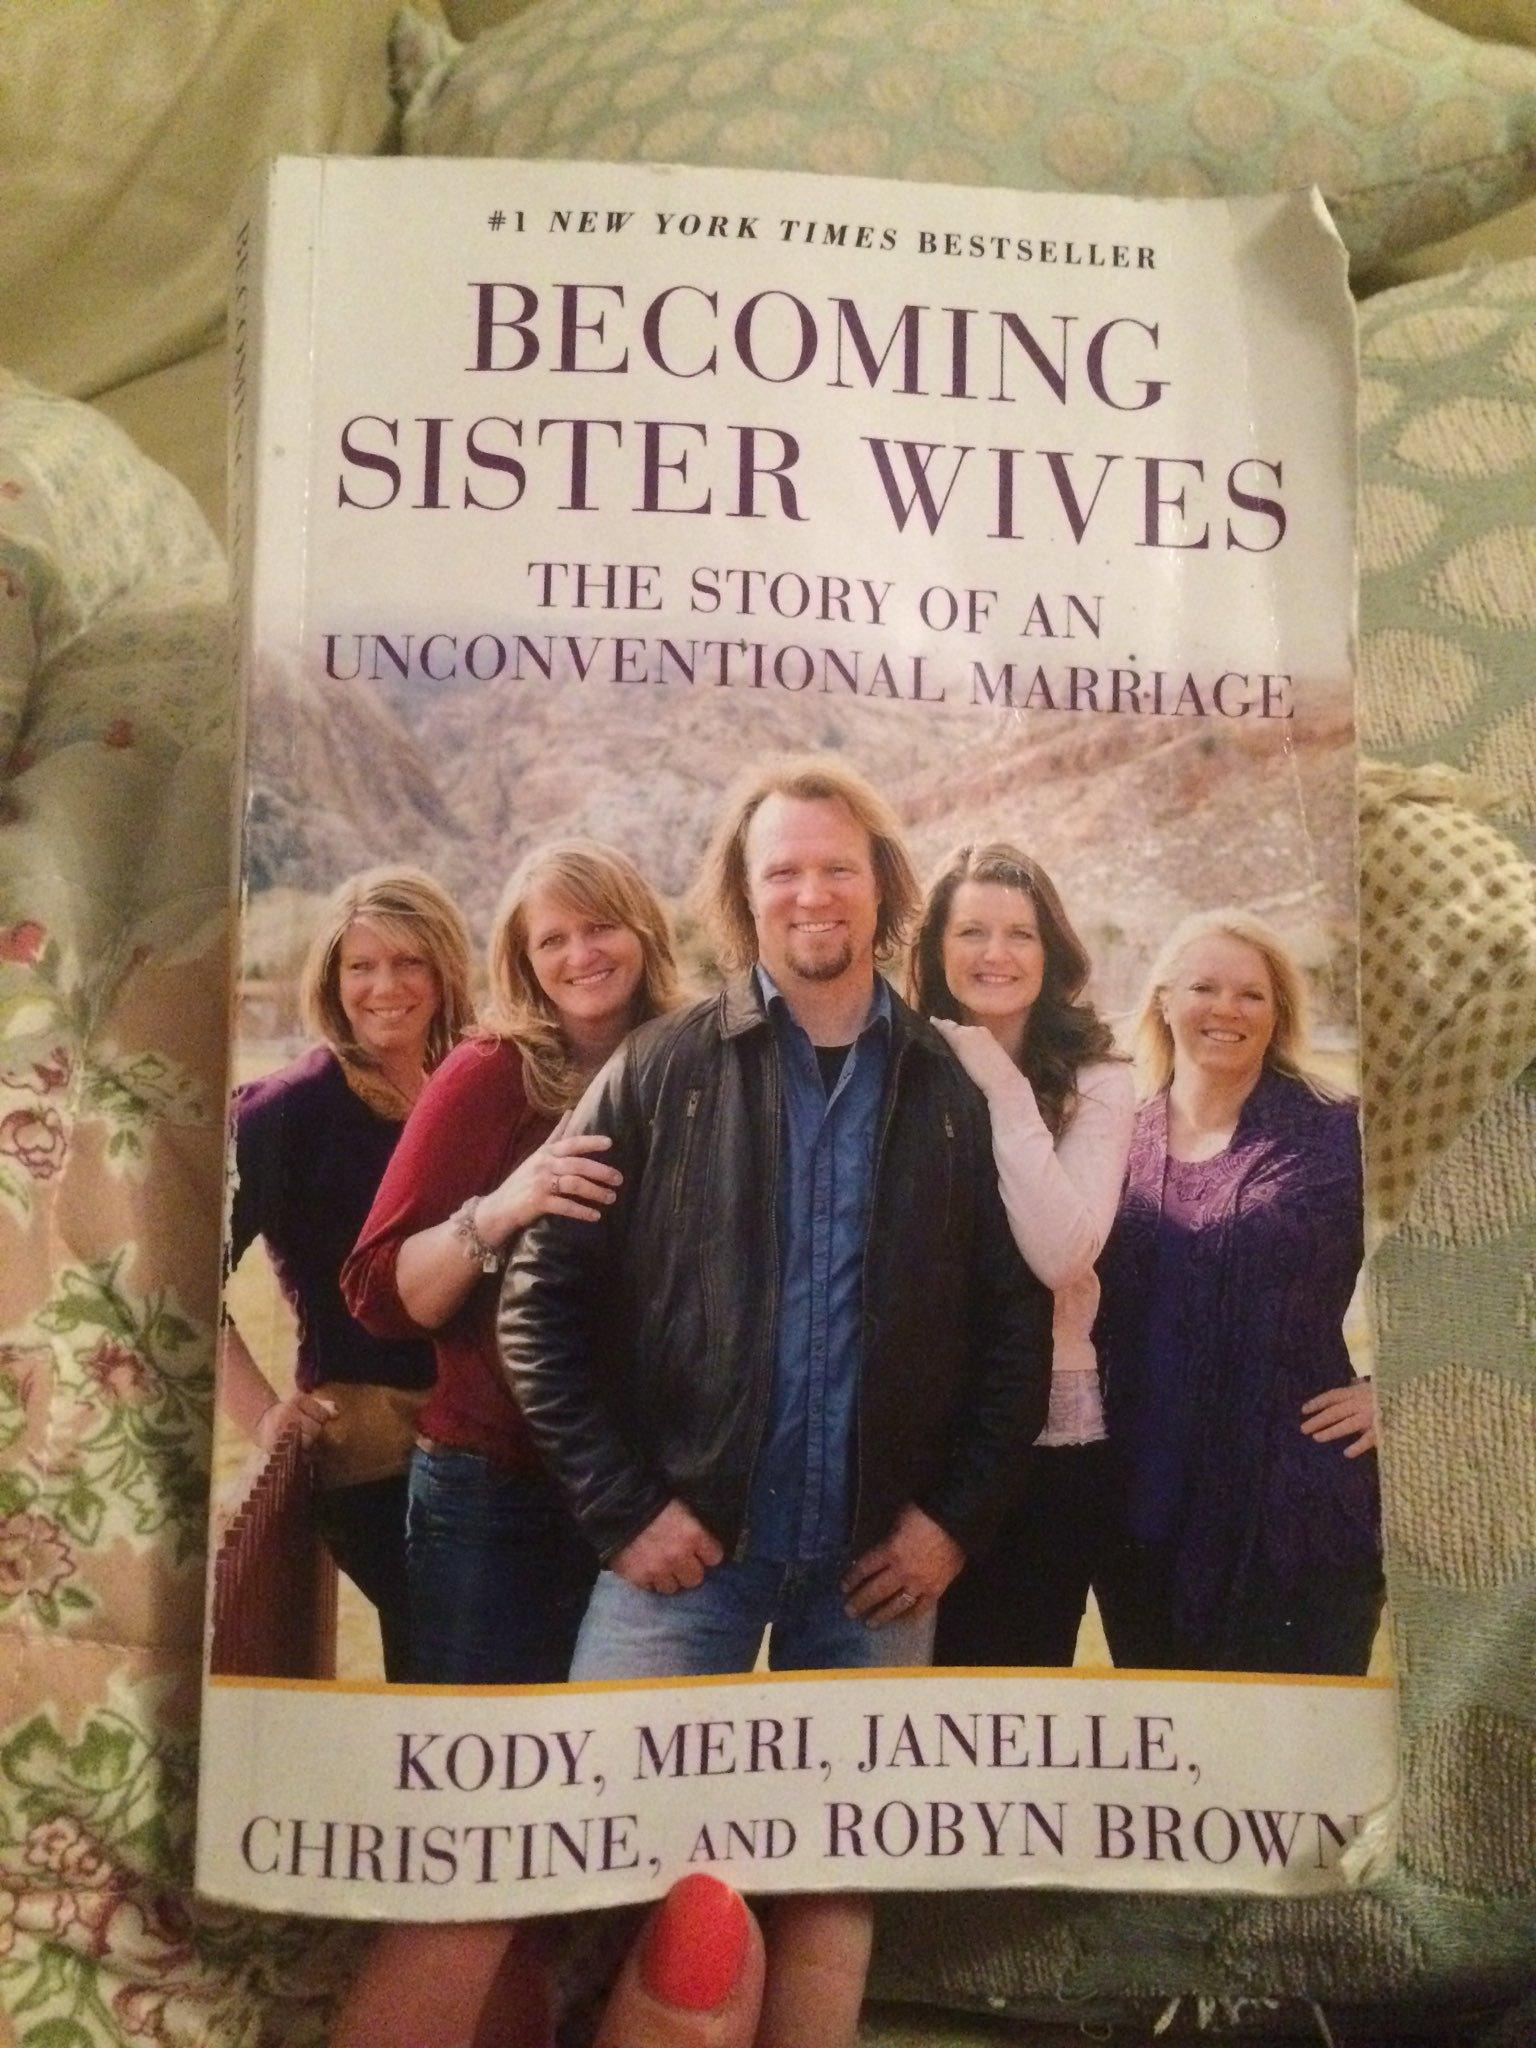 Sister wives book